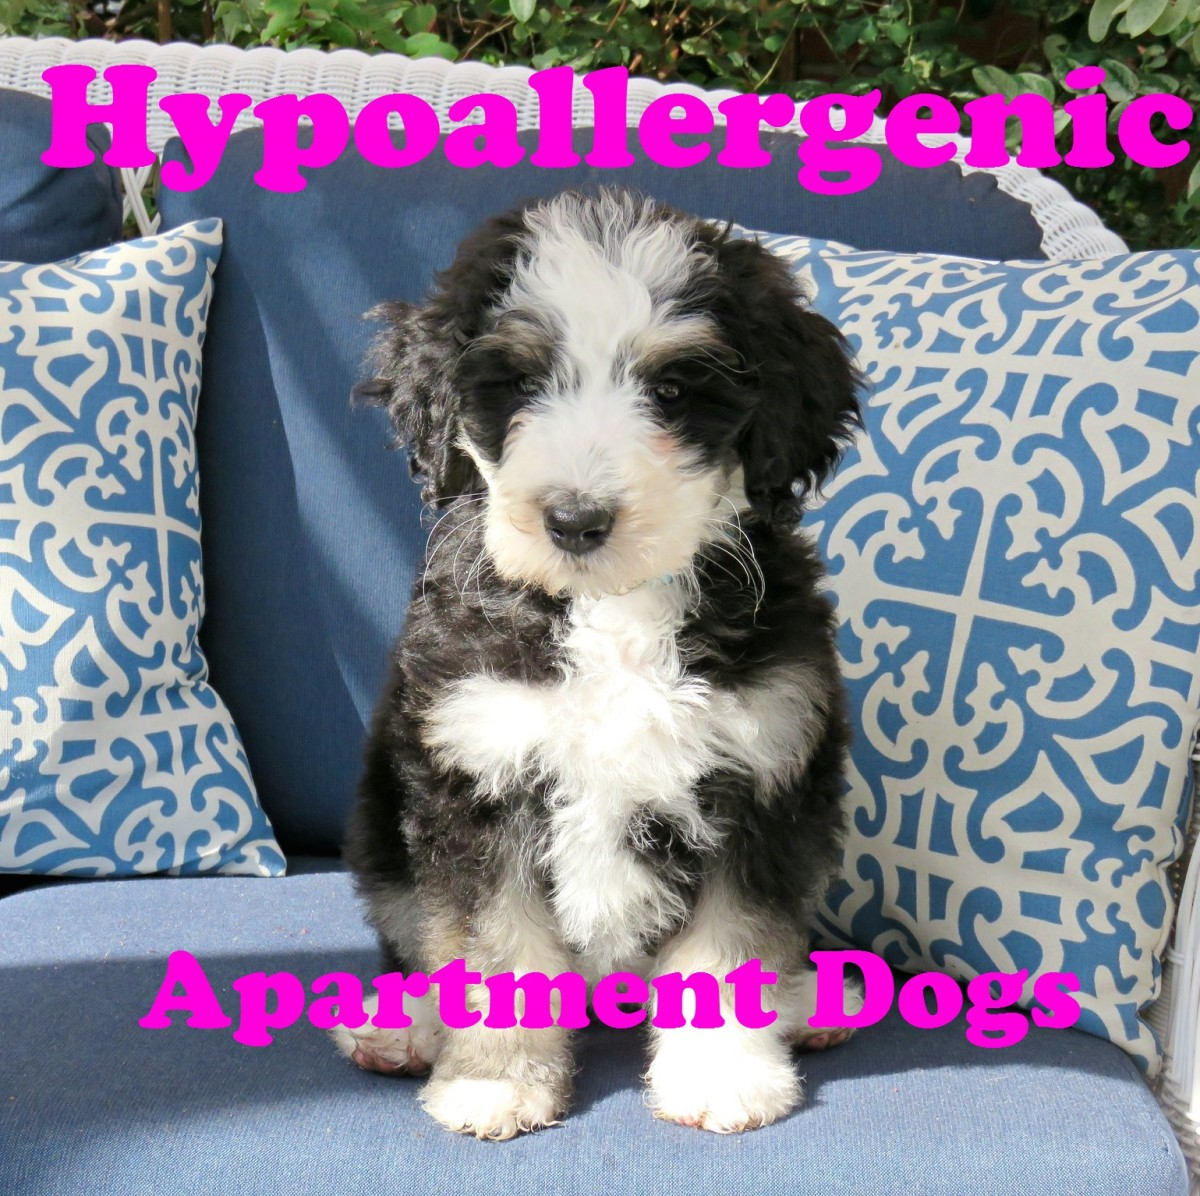 18 Best Hypoallergenic Dog Breeds for Your Apartment (Small, Medium, and Large)